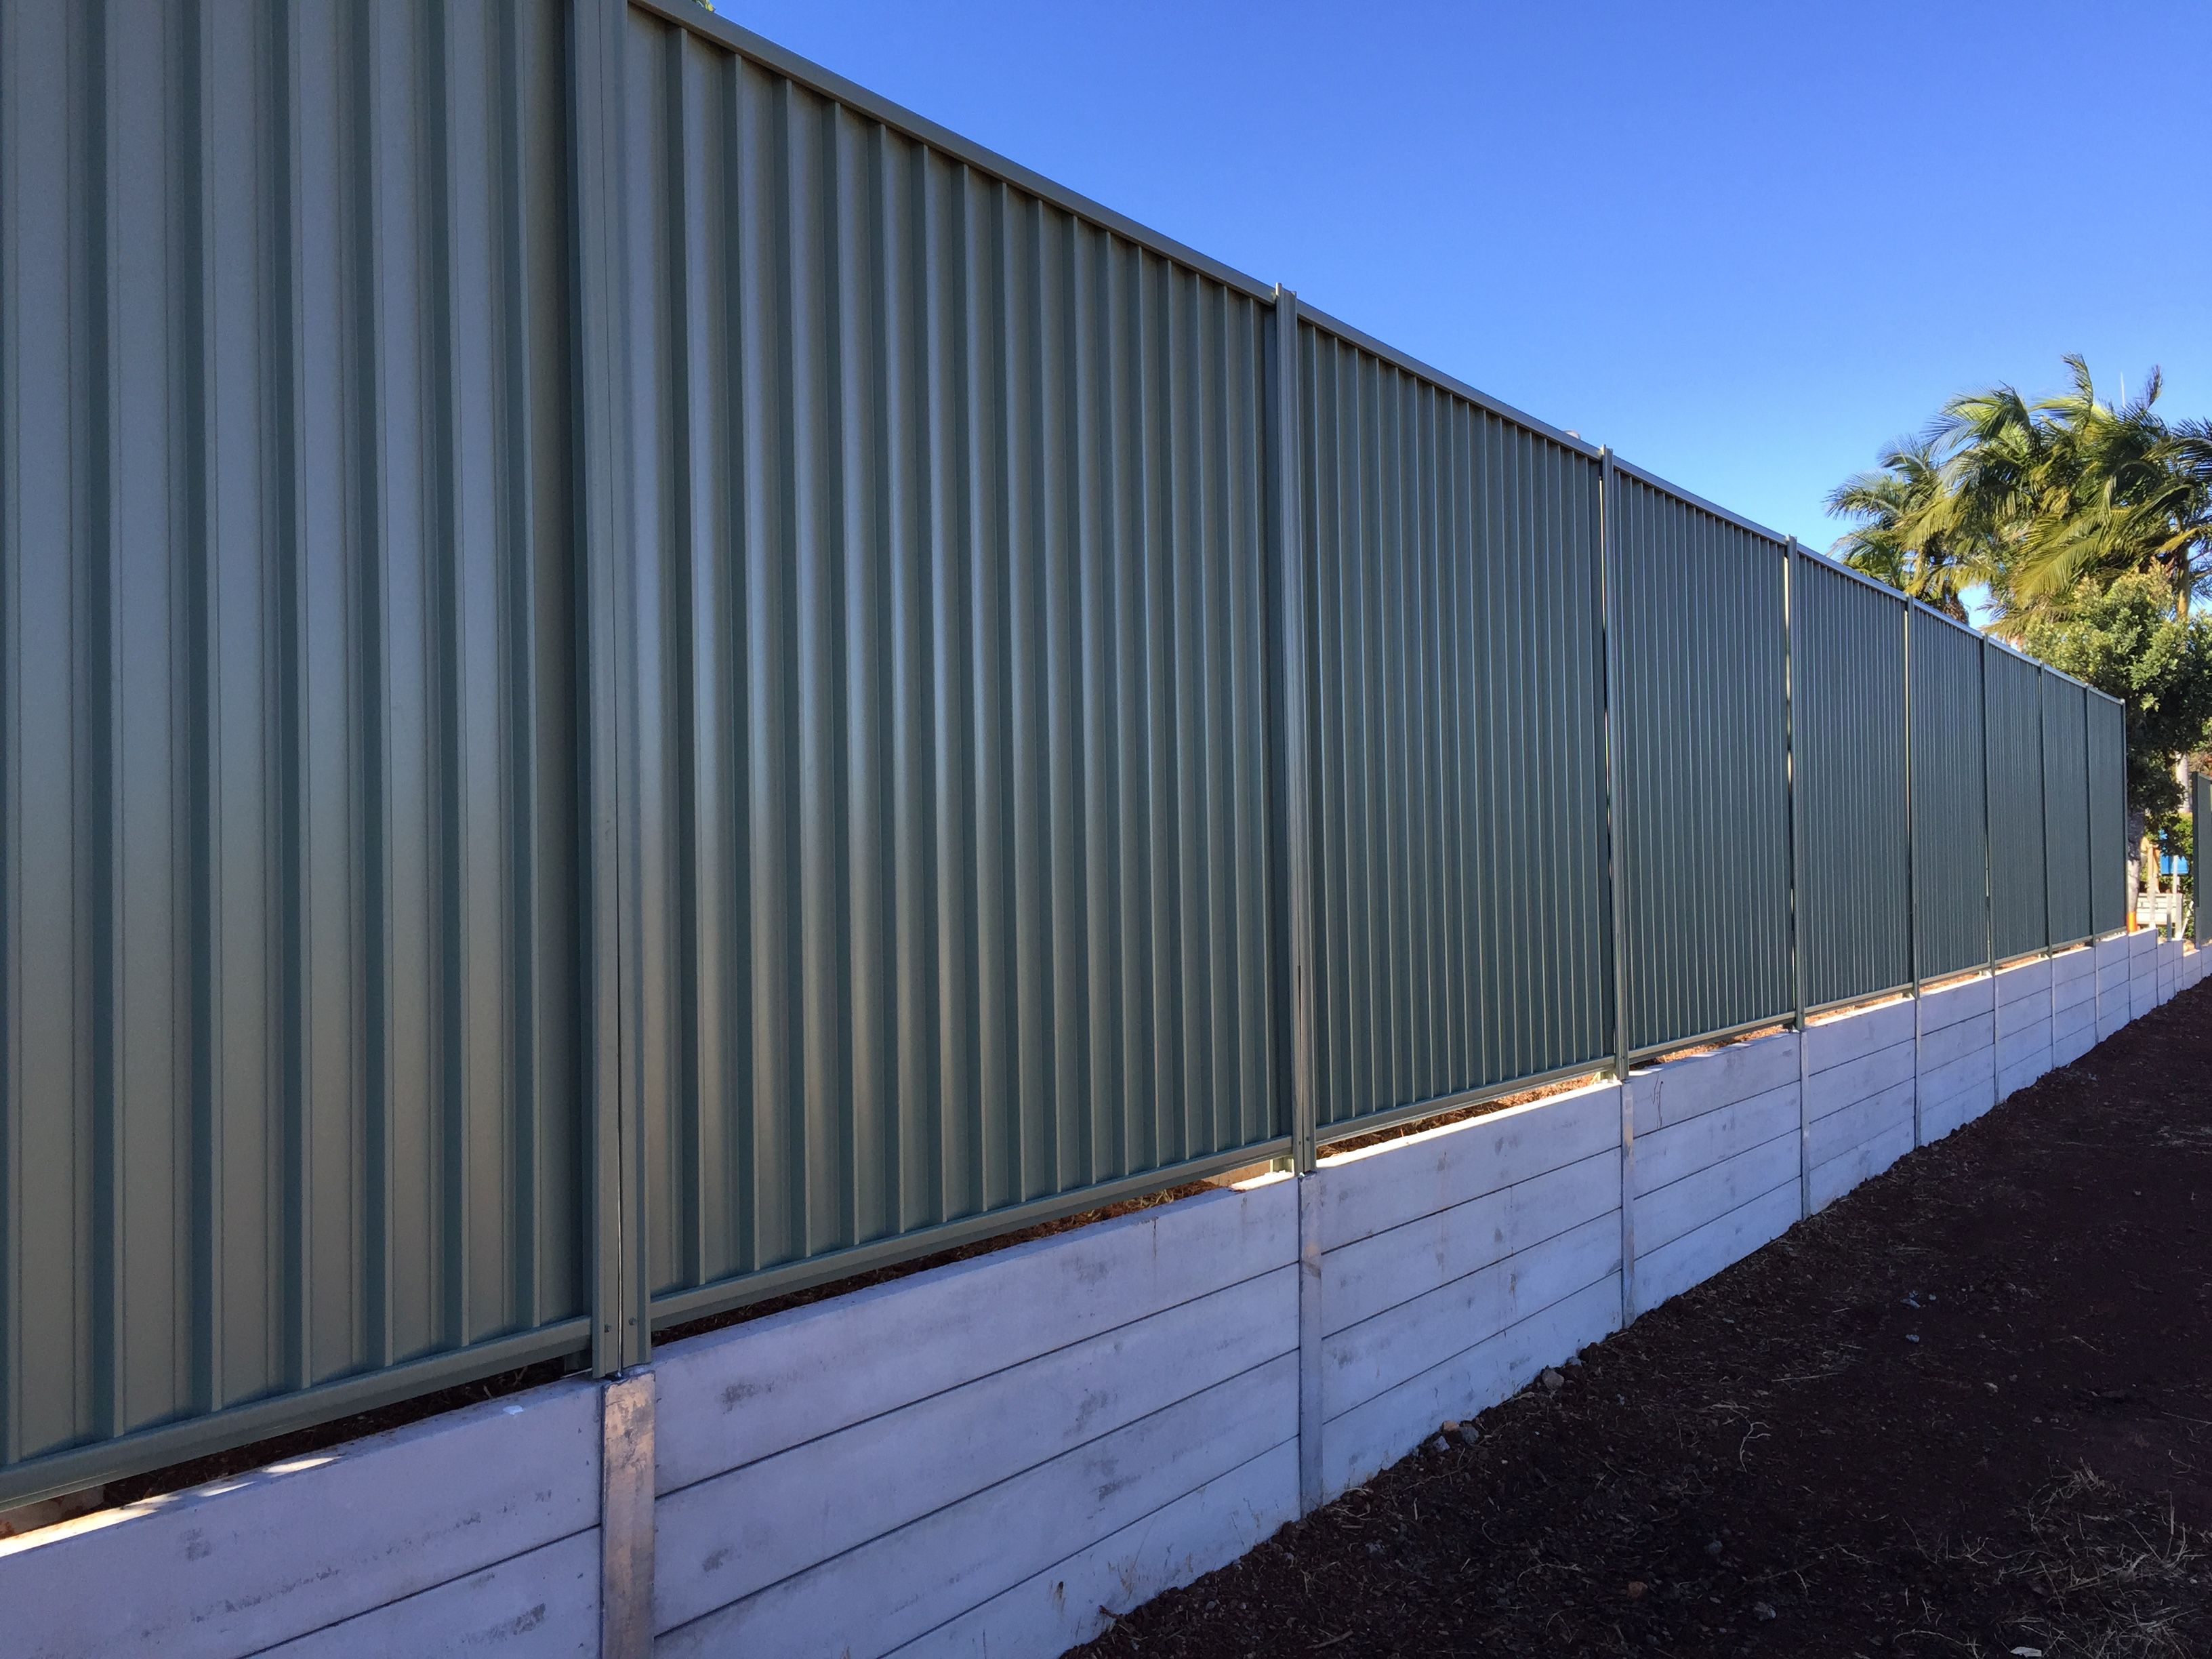 Recently Completed Northbond Colourbond Fencing And Concrete Sleeper Retaining Wall A Landscaping Retaining Walls Concrete Sleeper Retaining Walls Fence Design